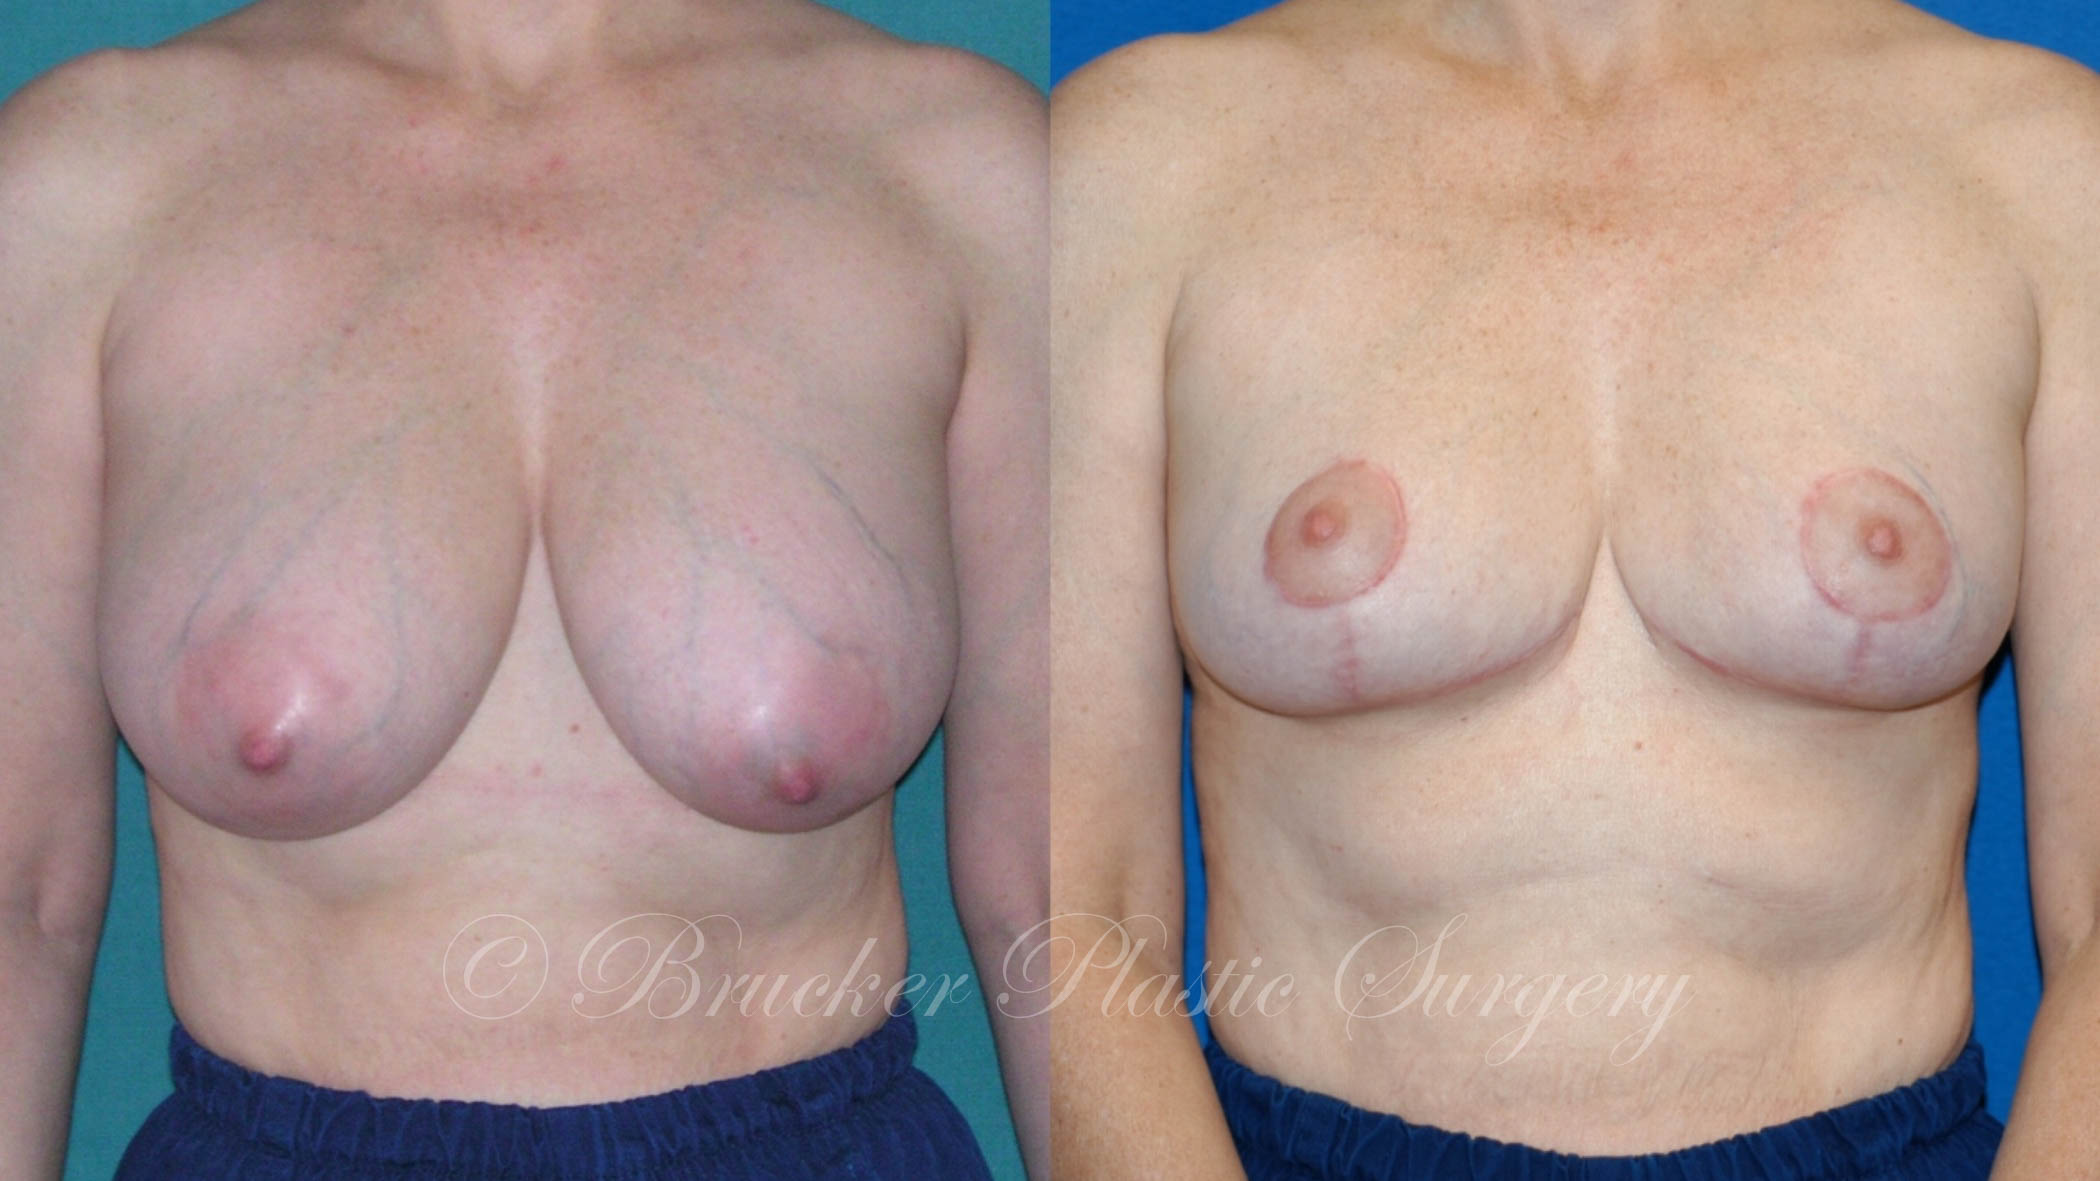 Breast Reduction La Jolla Patient 2.2